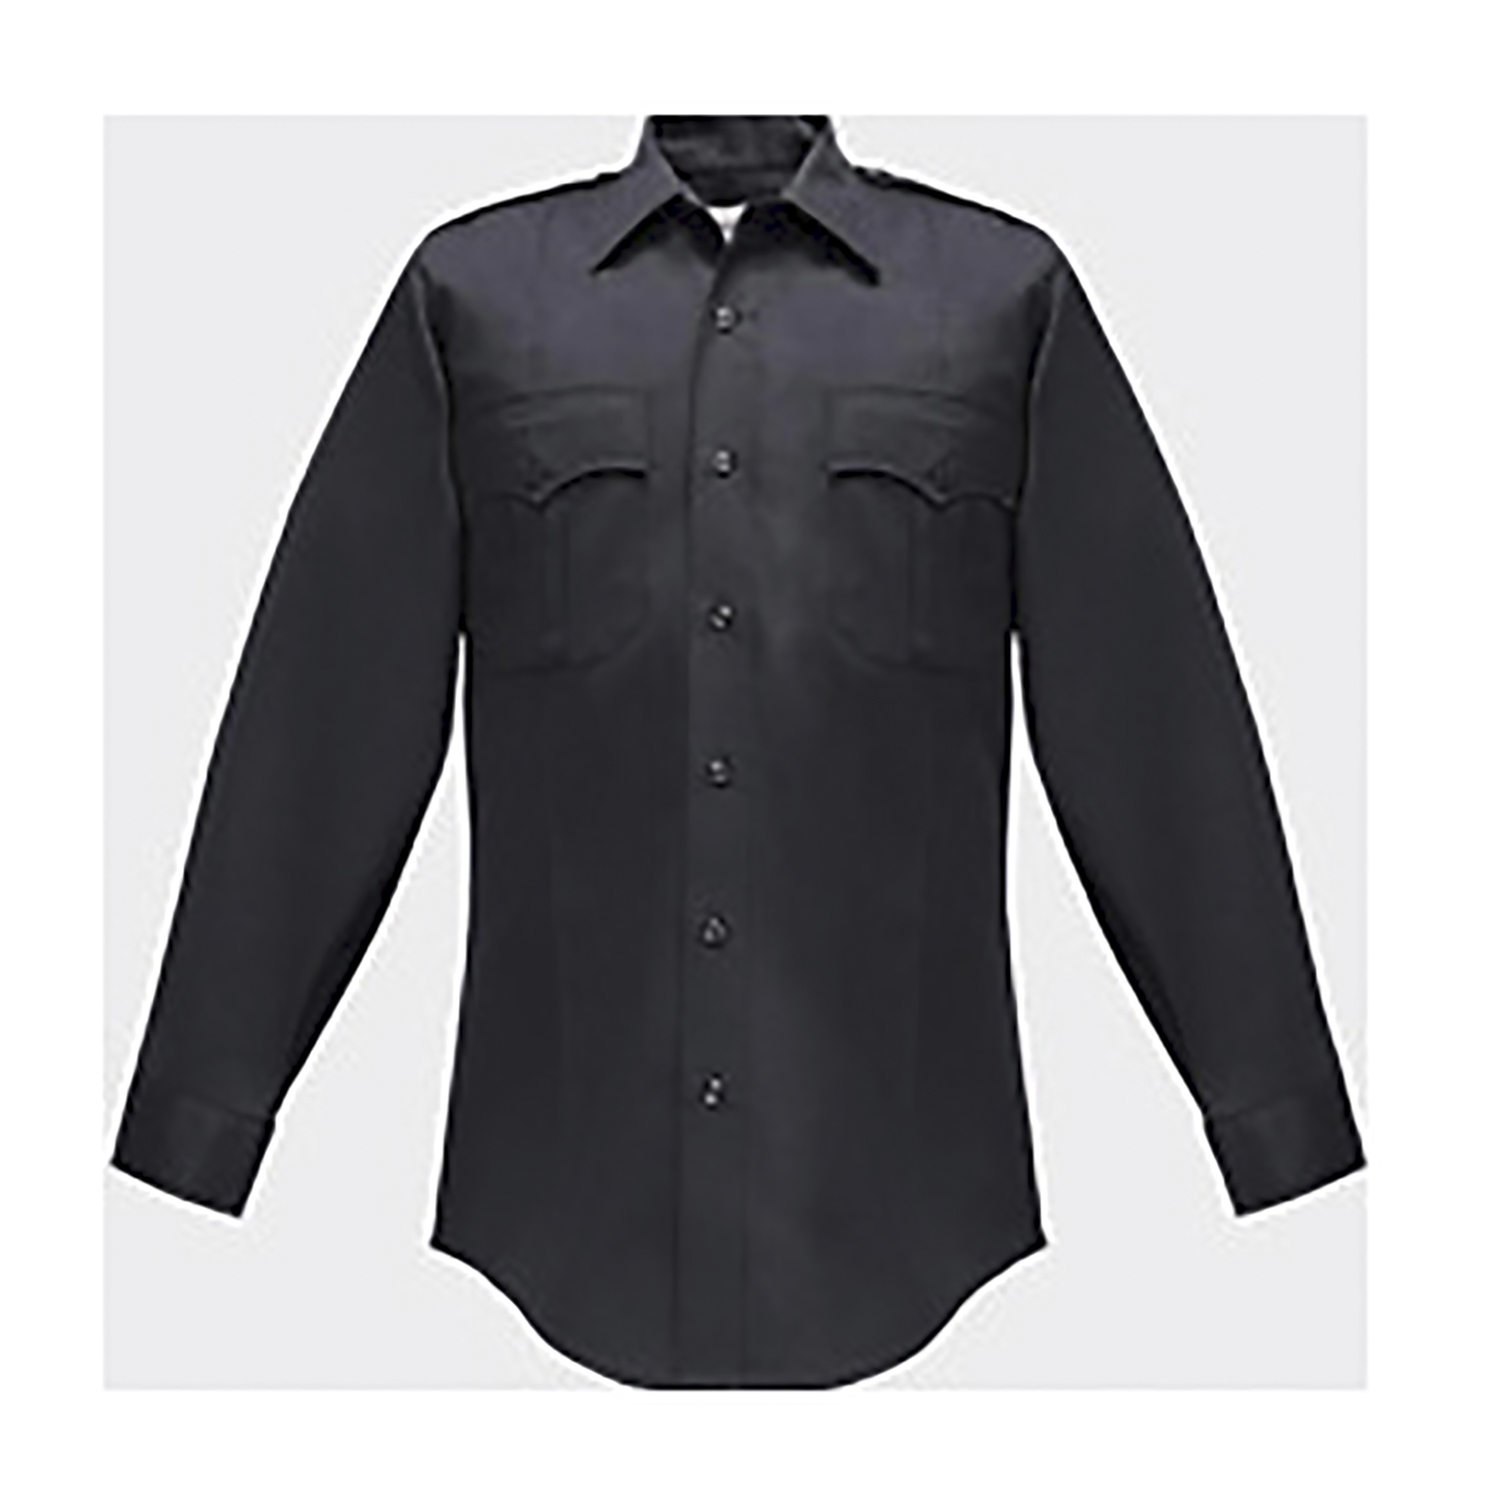 Flying Cross Men's LAPD Uniform Long Sleeve Tactical Shirt